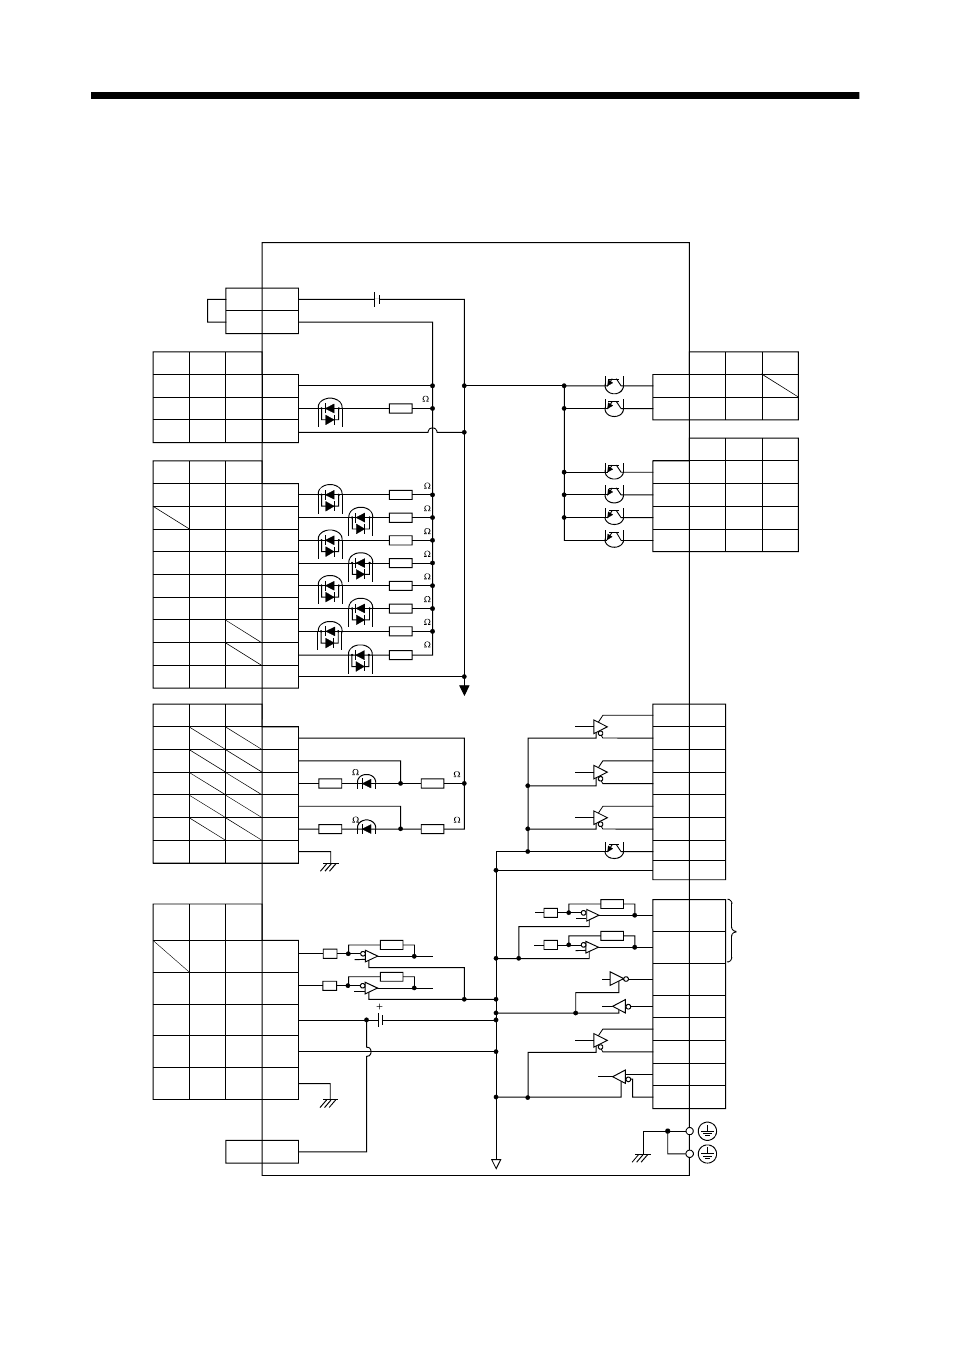 medium resolution of 2 internal connection diagram of servo amplifier signals and wiring2 internal connection diagram of servo